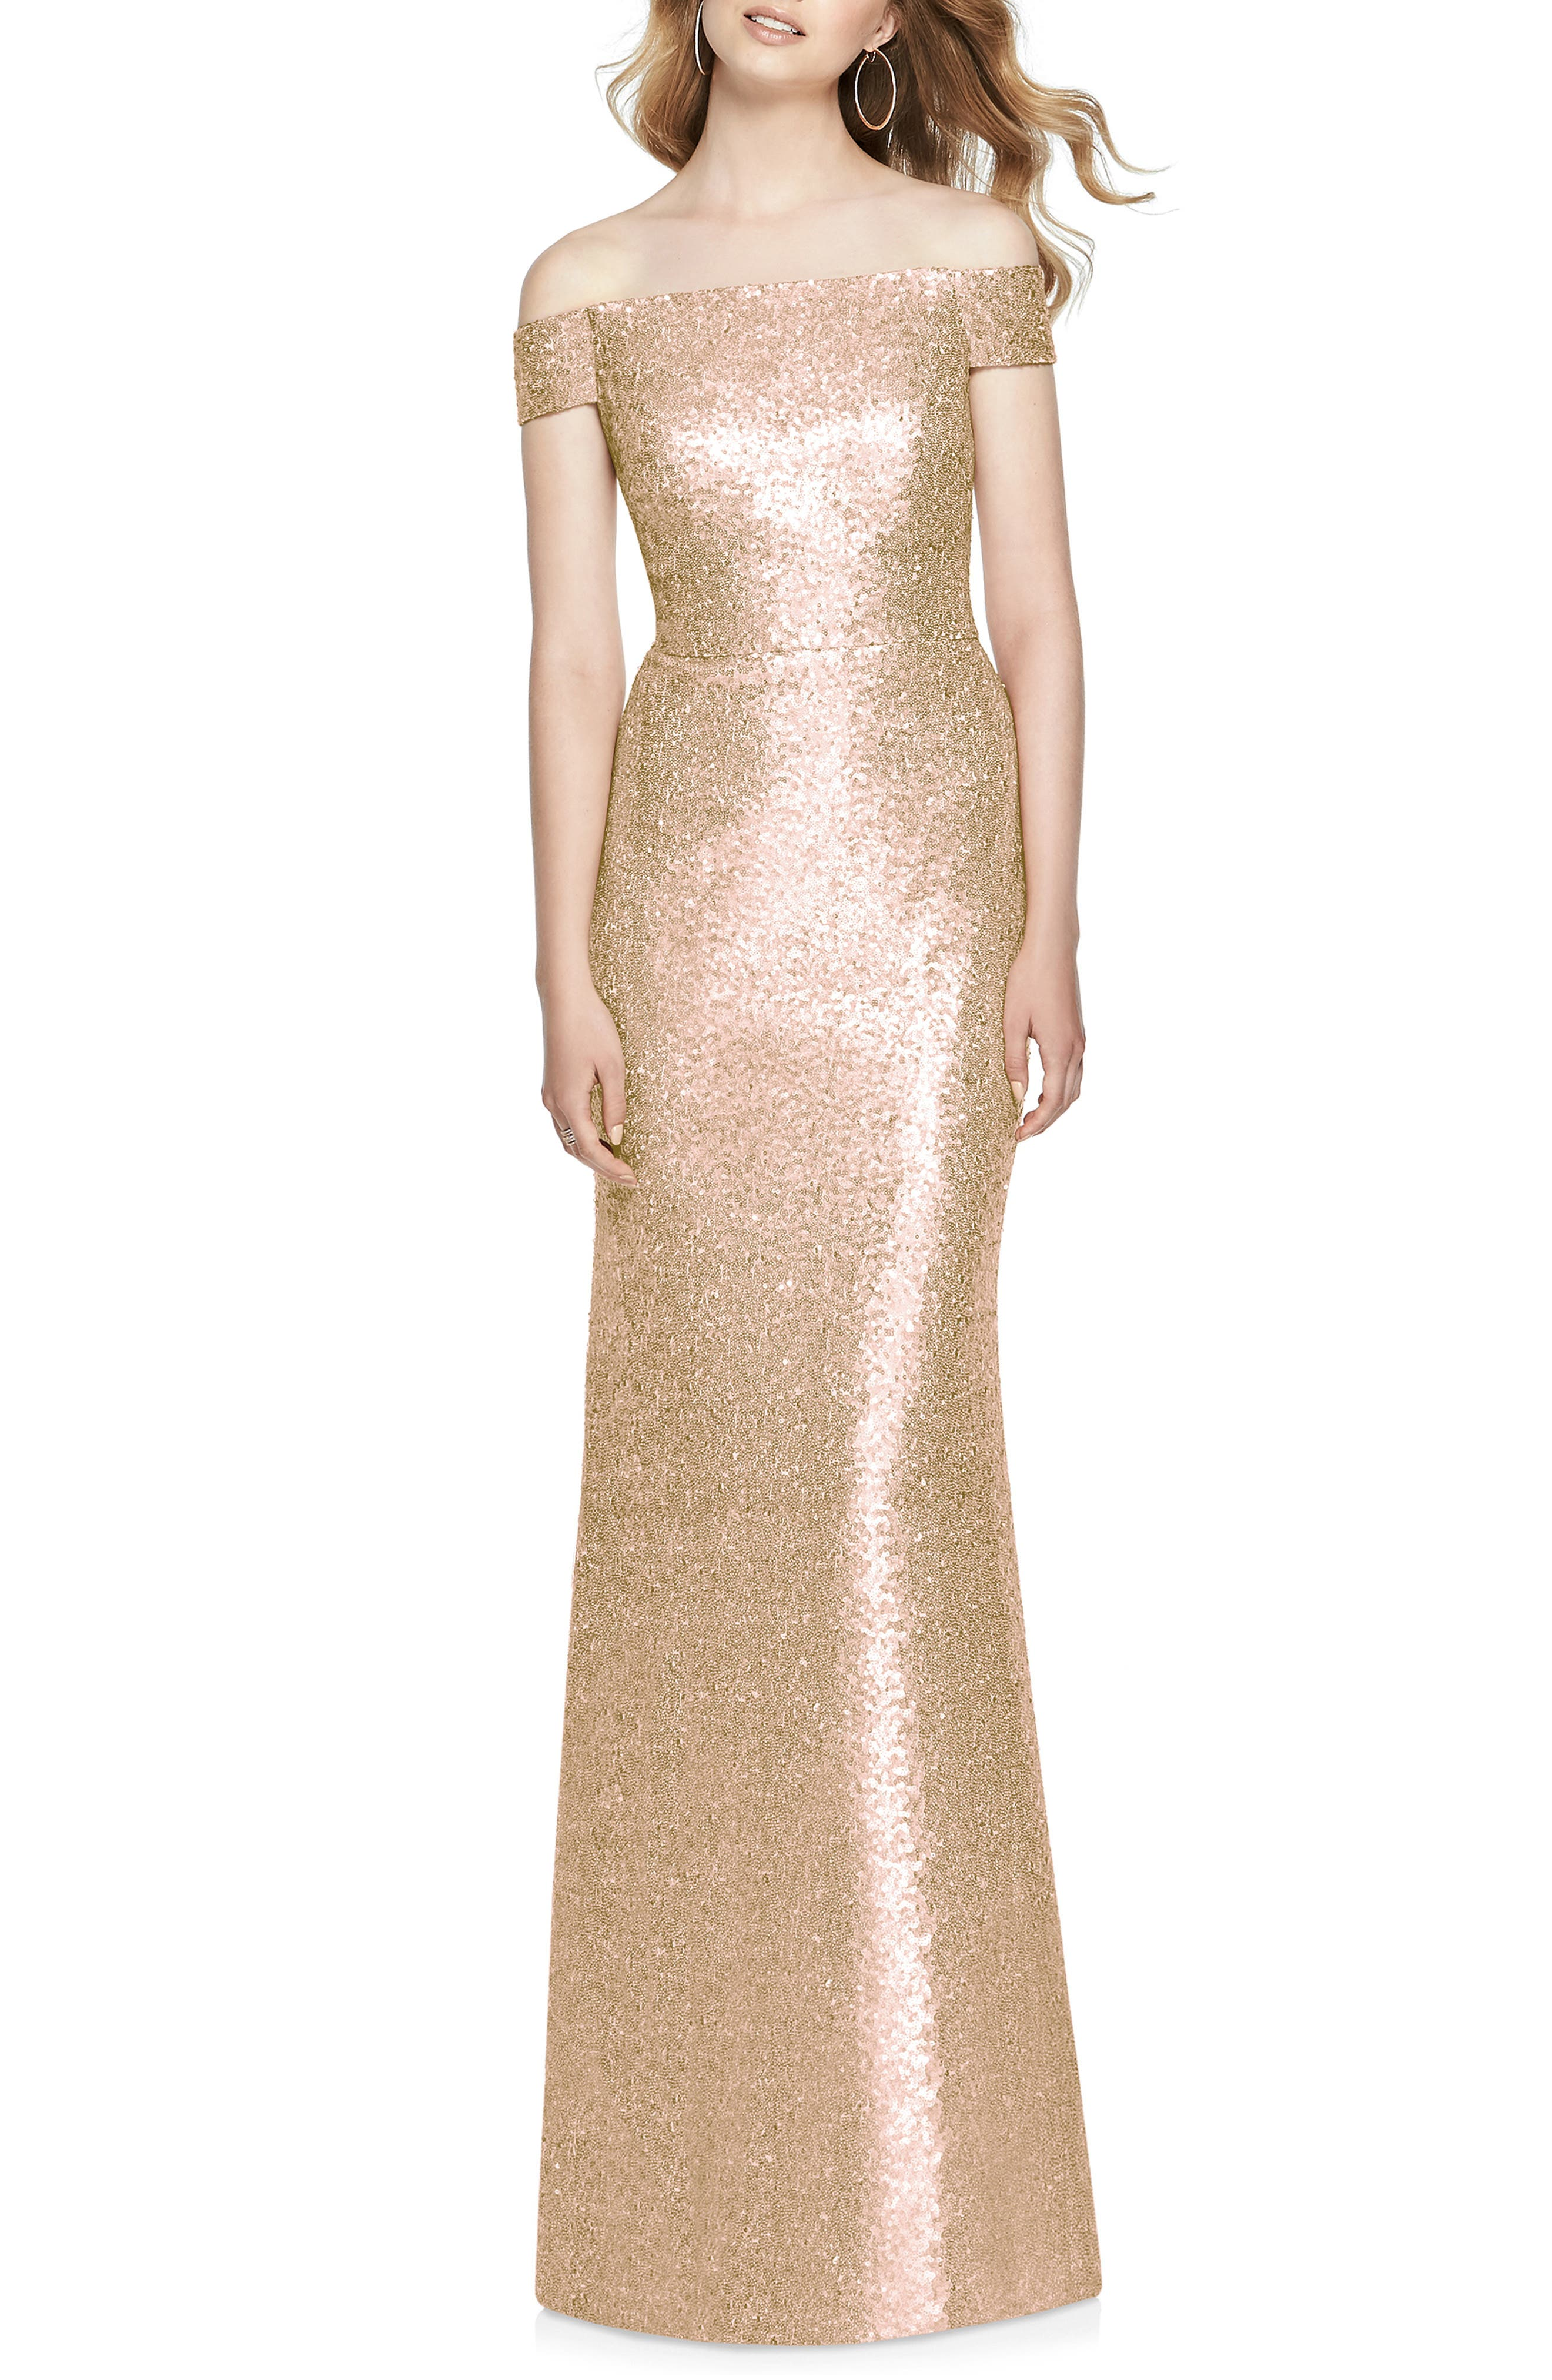 DESSY COLLECTION, Sequin Off the Shoulder Gown, Main thumbnail 1, color, ROSE GOLD